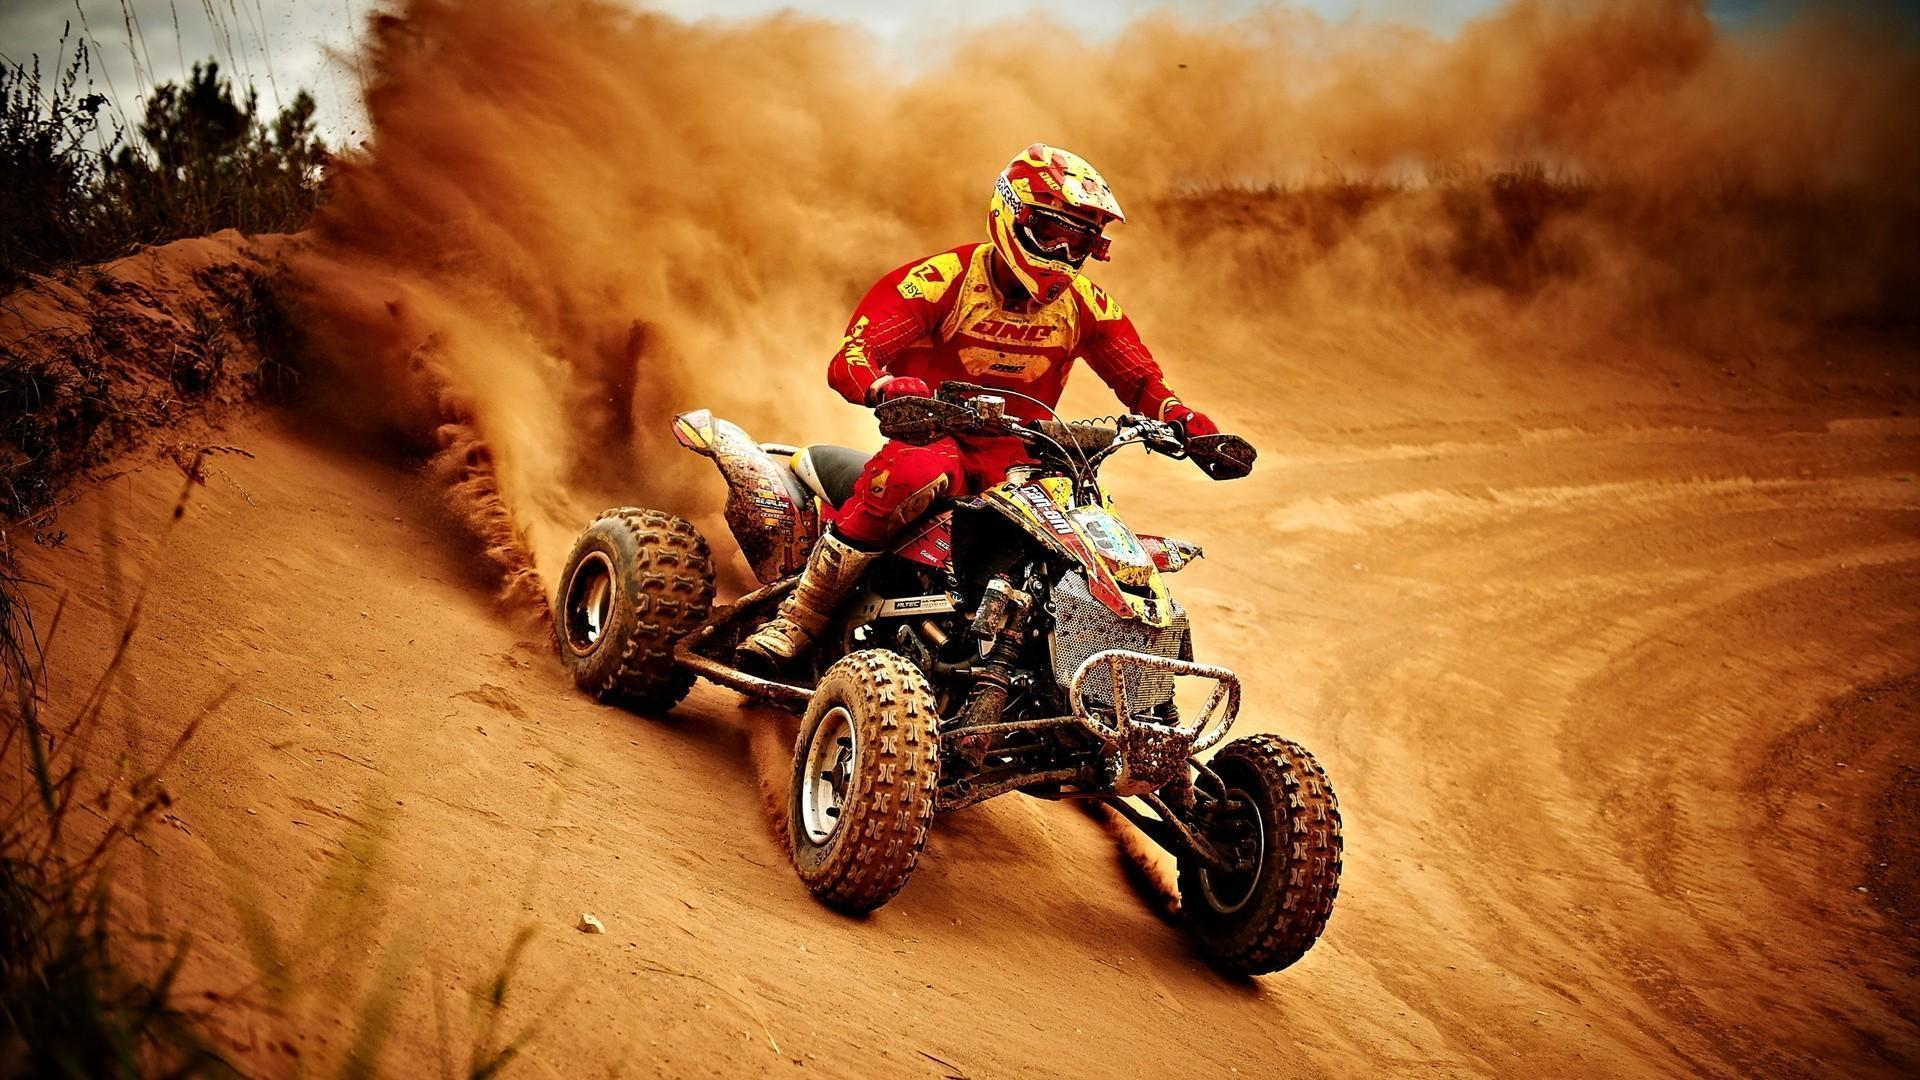 Atv rally Rally ATV Sports HD Wallpapers, Desktop Backgrounds ...